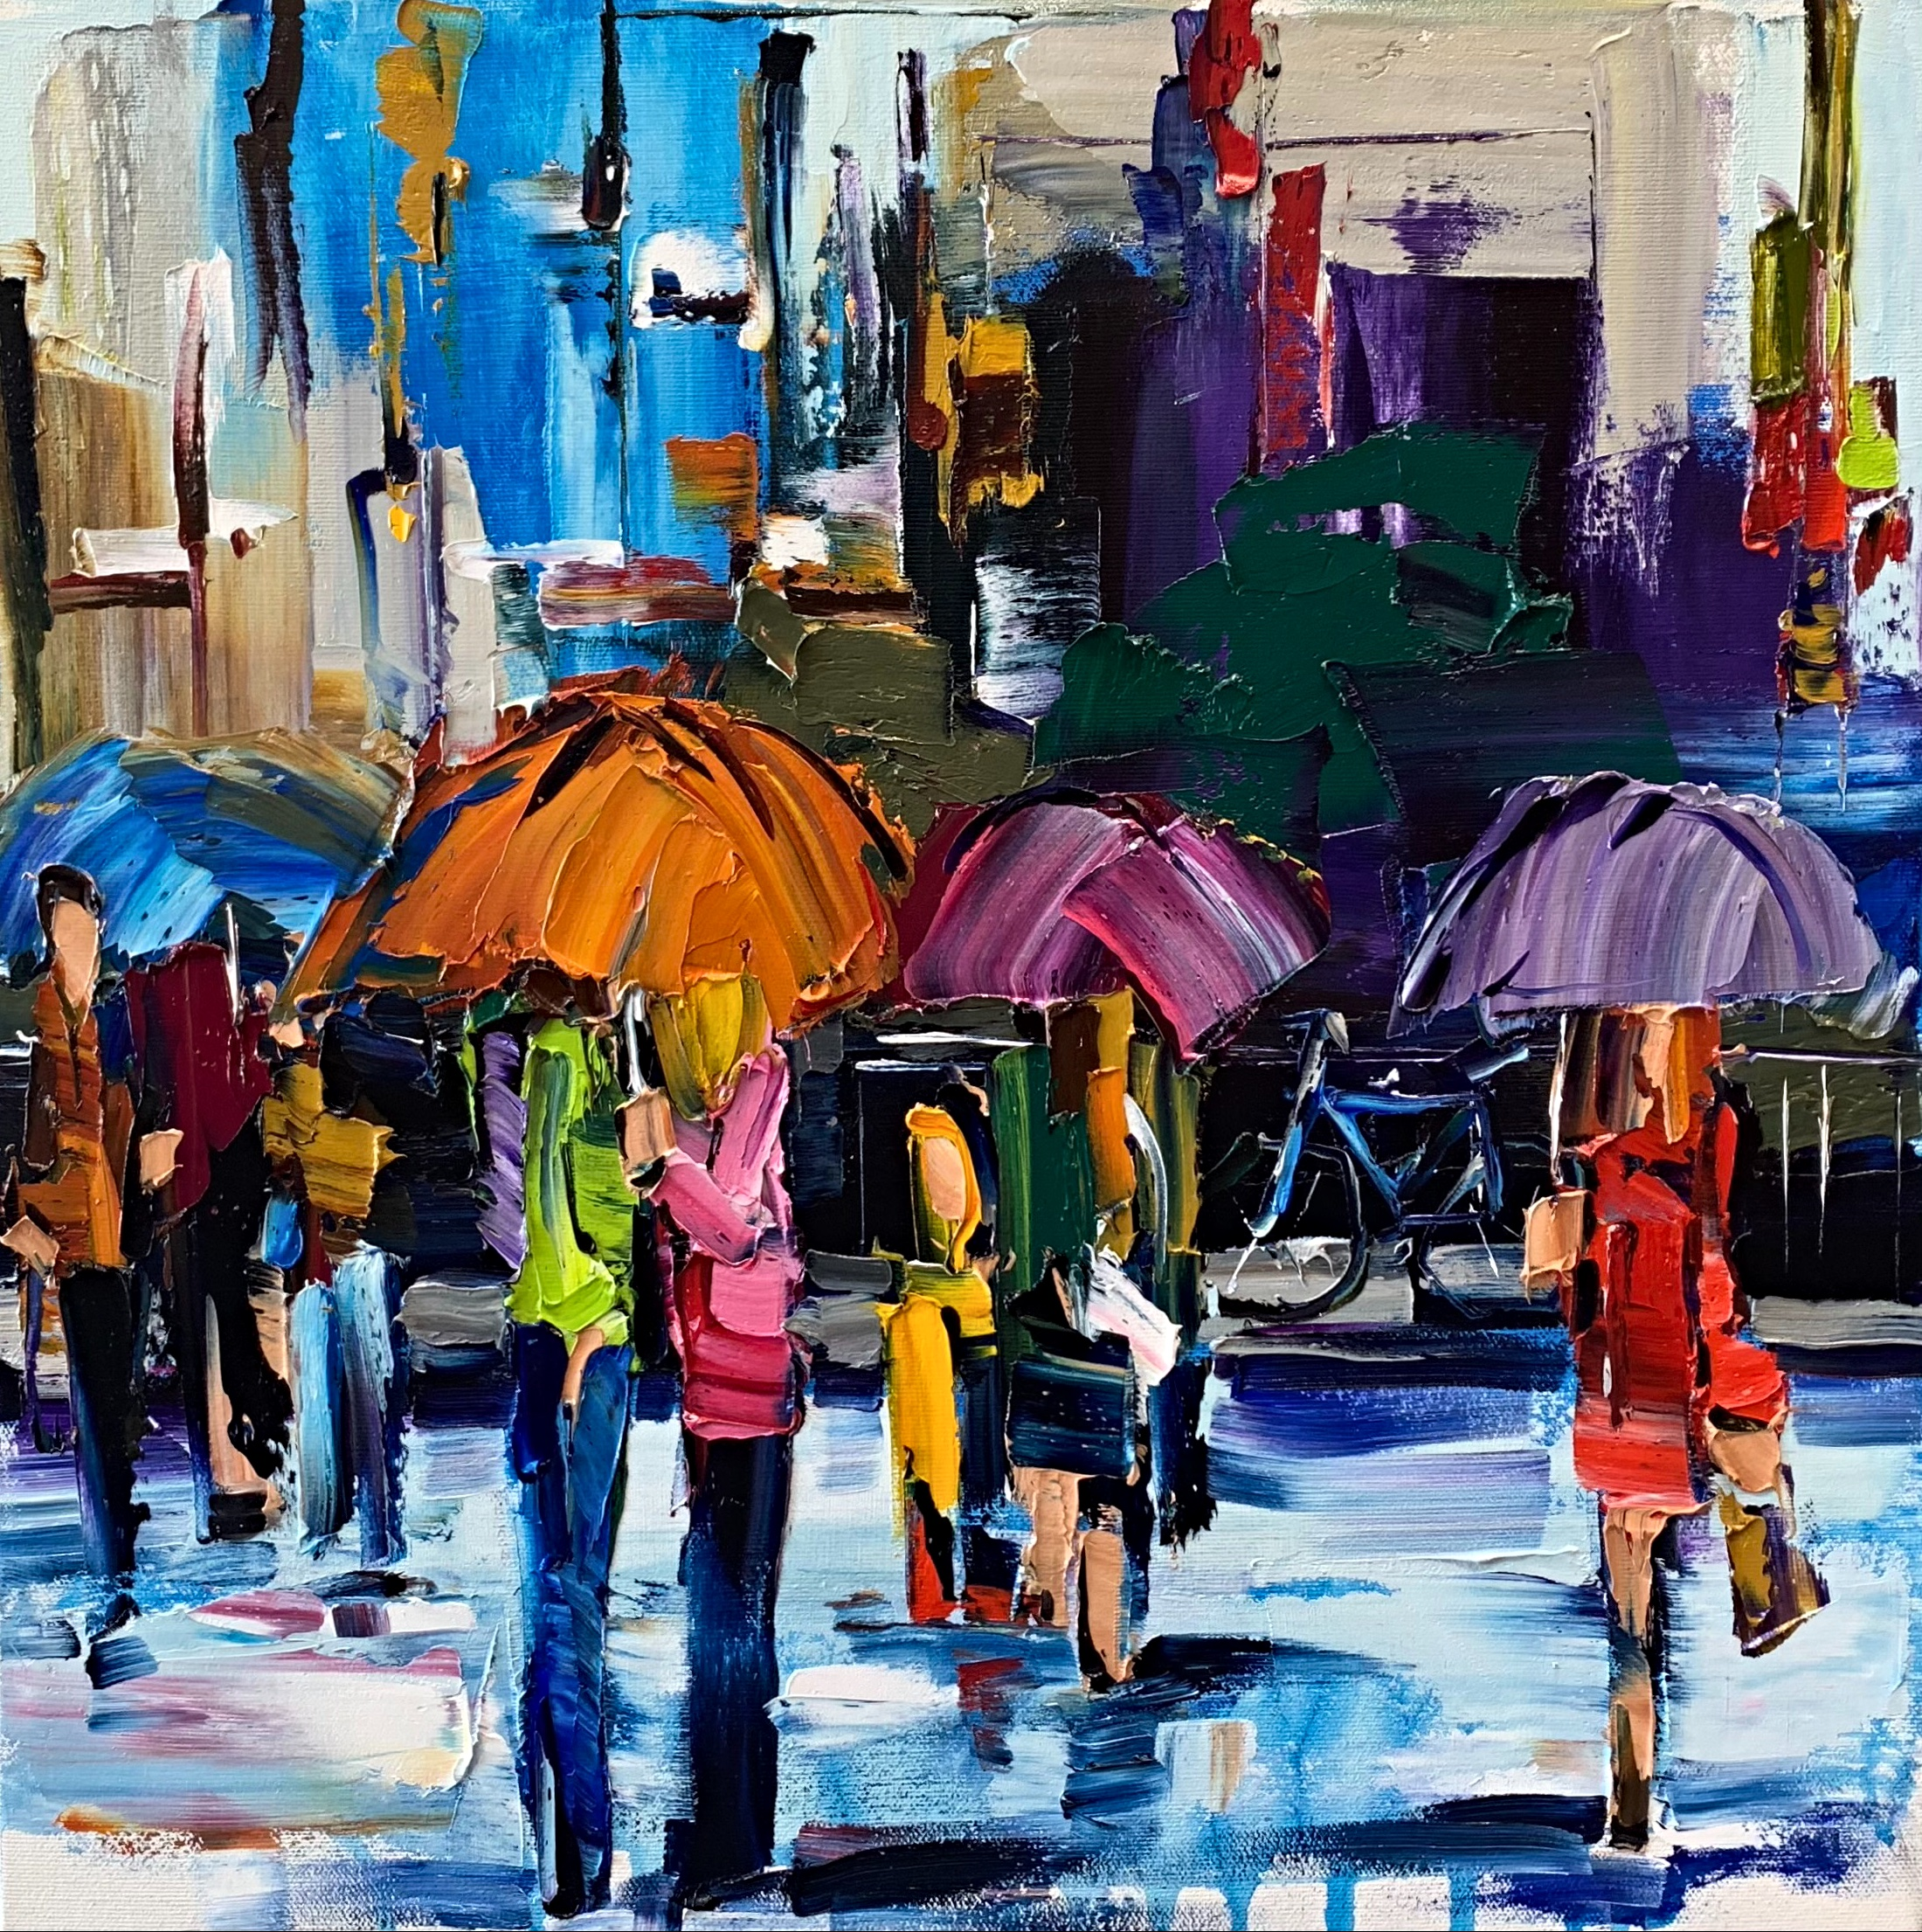 There's Just Something about an Umbrella 2, rainy cityscape painting by Kimberly Kiel   Effusion Art Gallery + Cast Glass Studio, Invermere BC